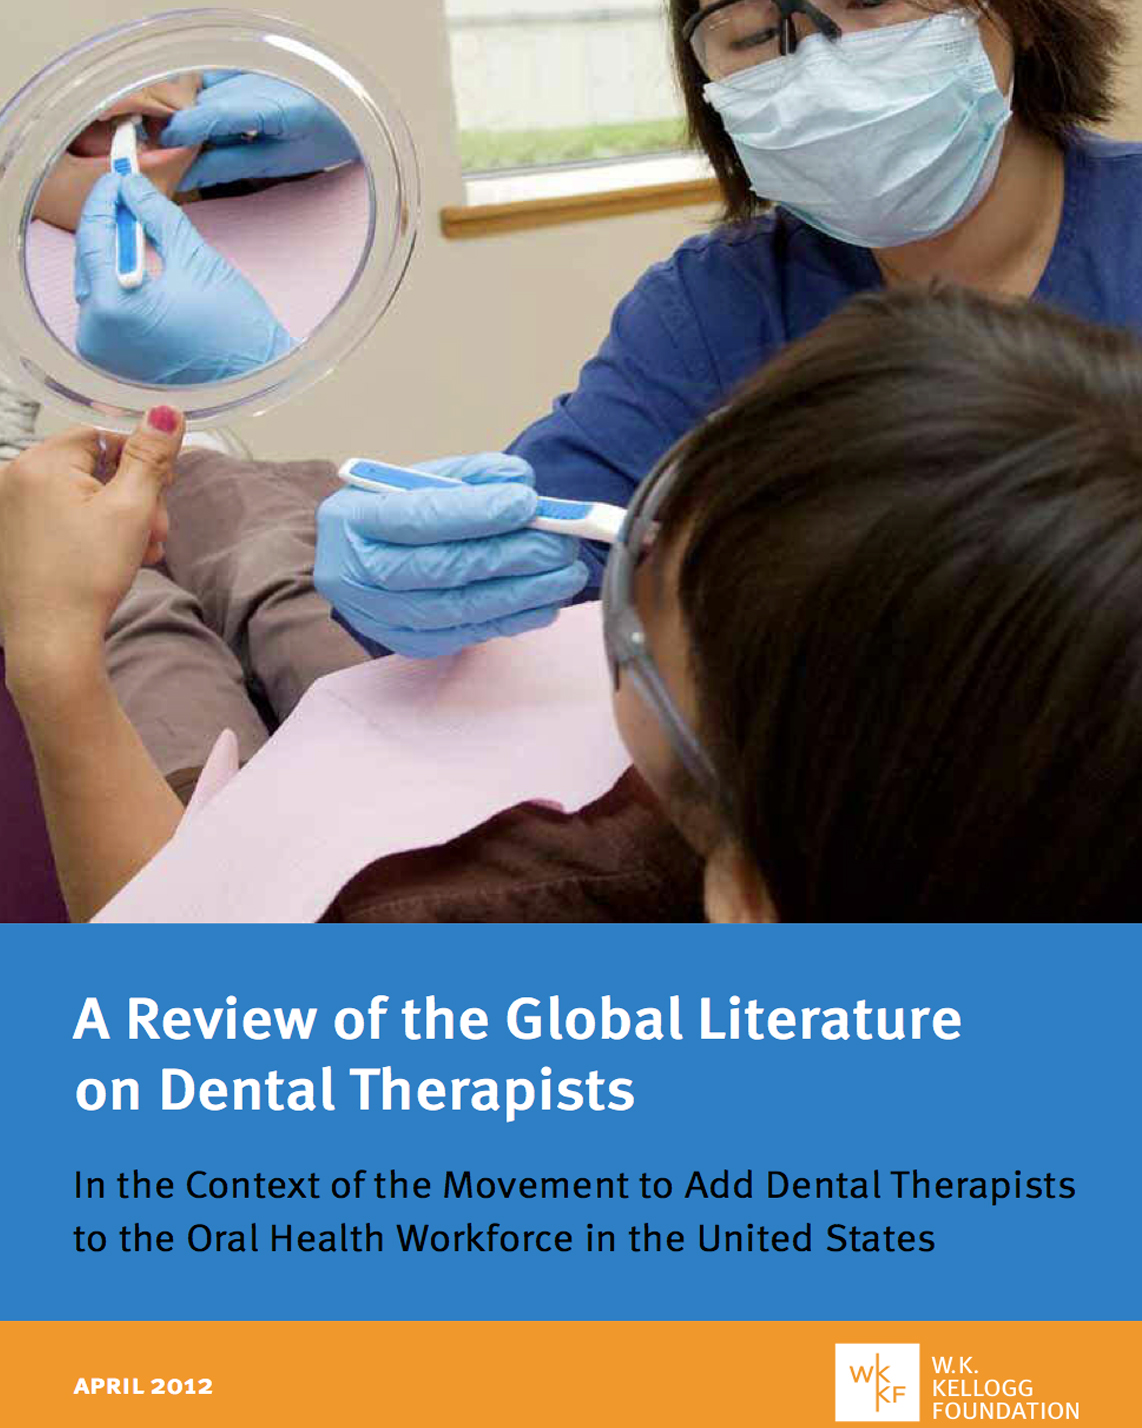 A review of the global literature on dental therapists - W.K. Kellogg Foundation